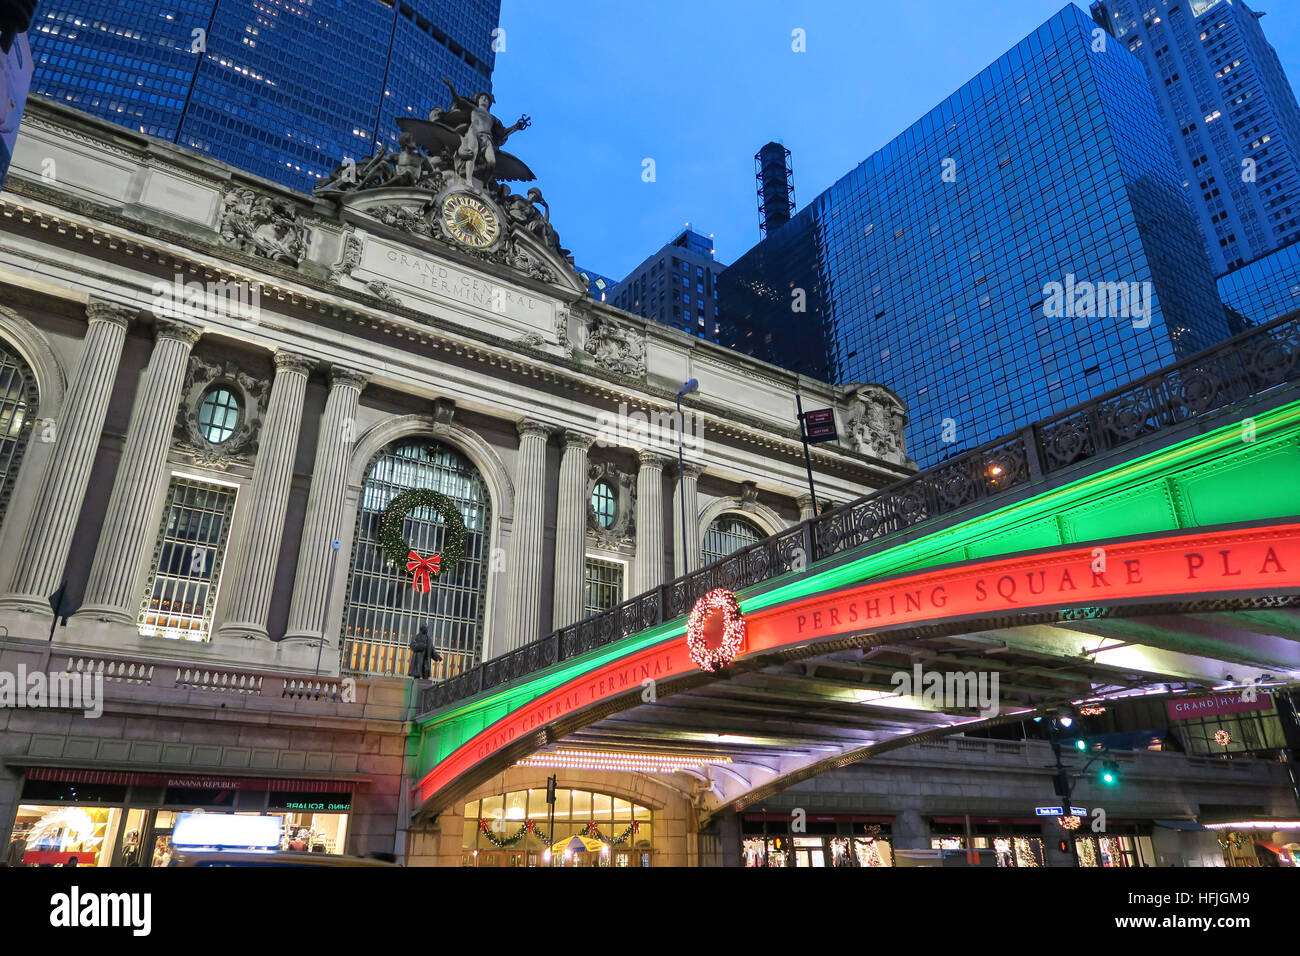 Pershing Square Holiday Lights in New York City, USA Stockbild